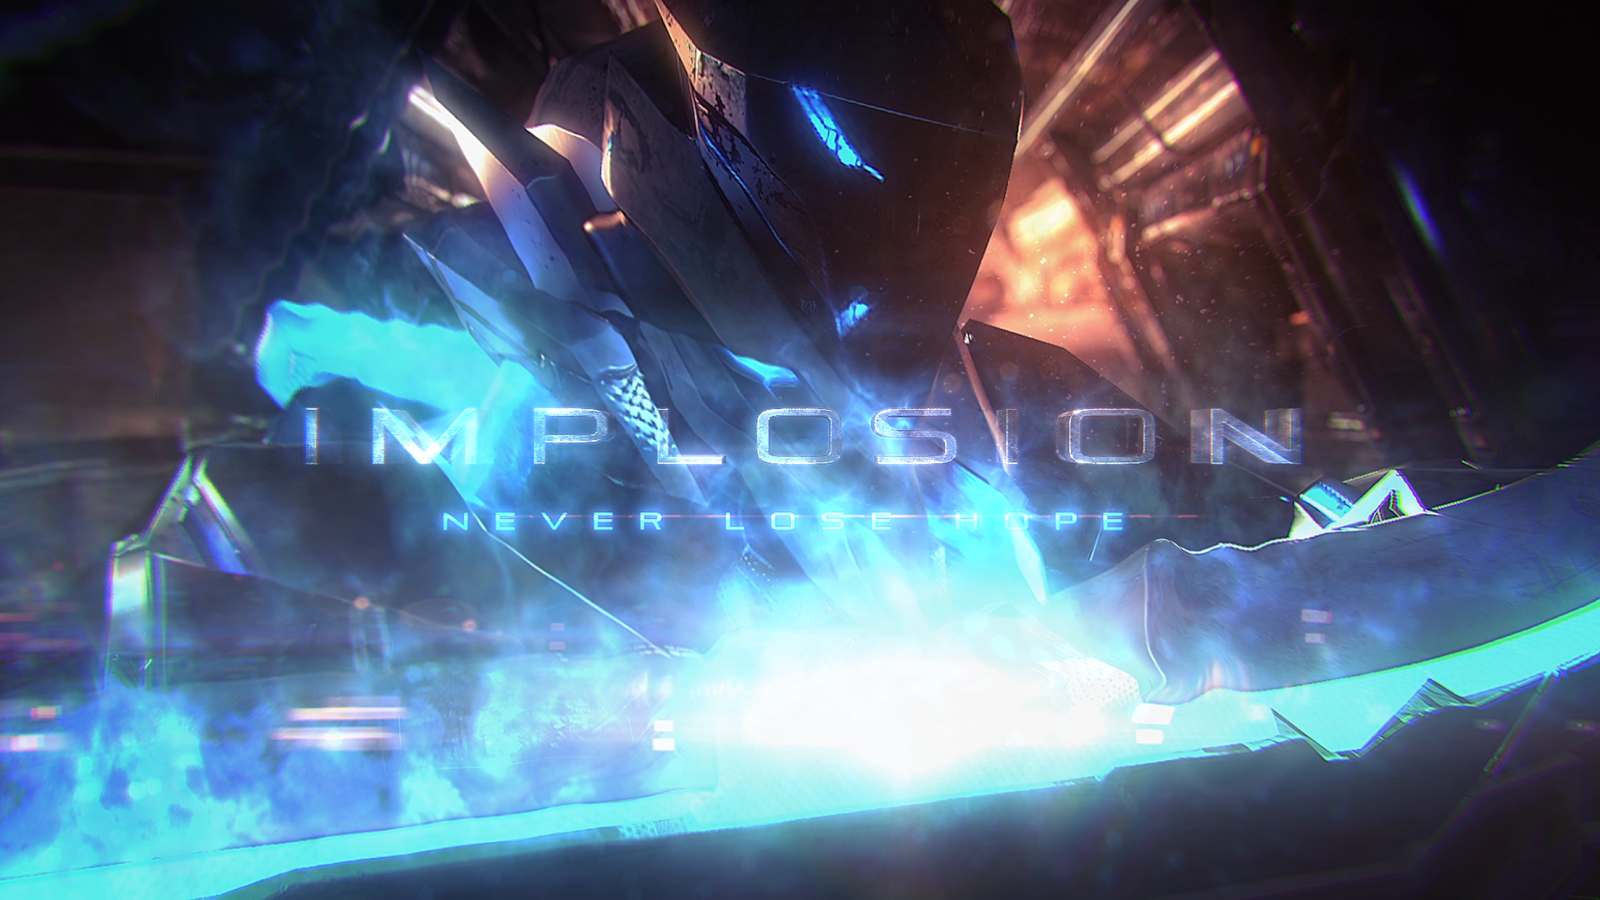 Implosion - Never Lose Hope- screenshot